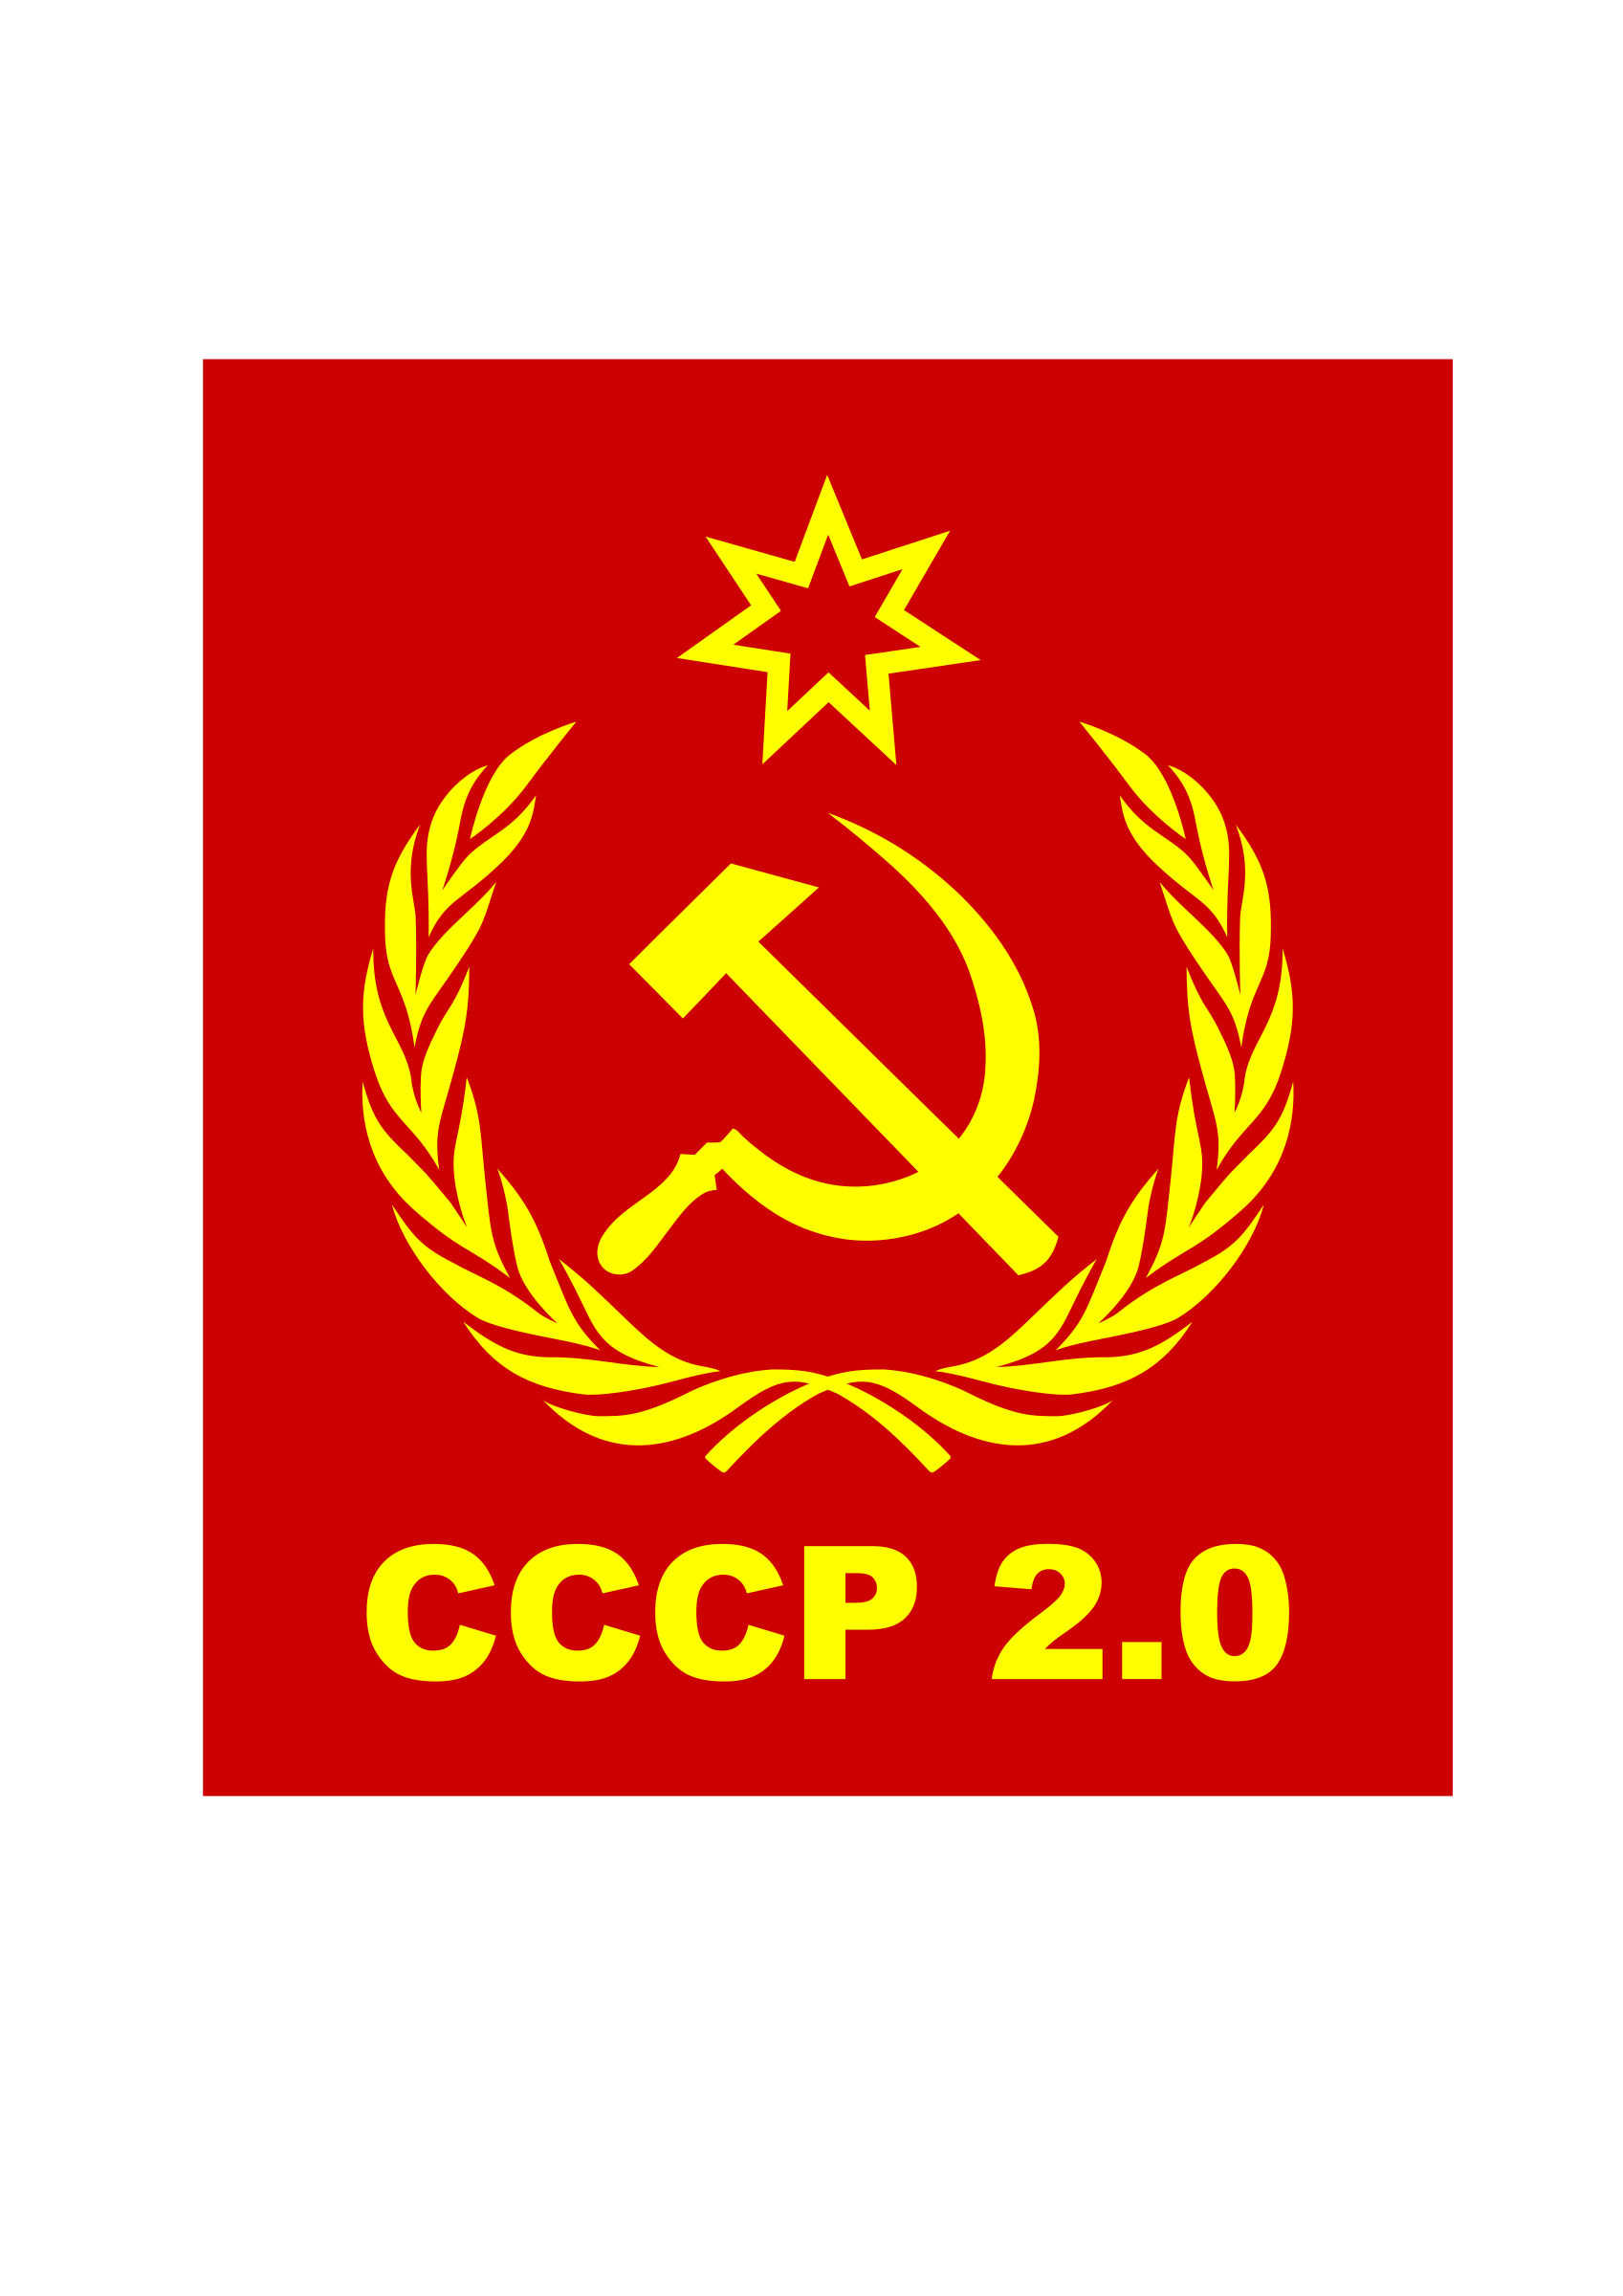 CCCP2.0 flag by yyk@mail.ru